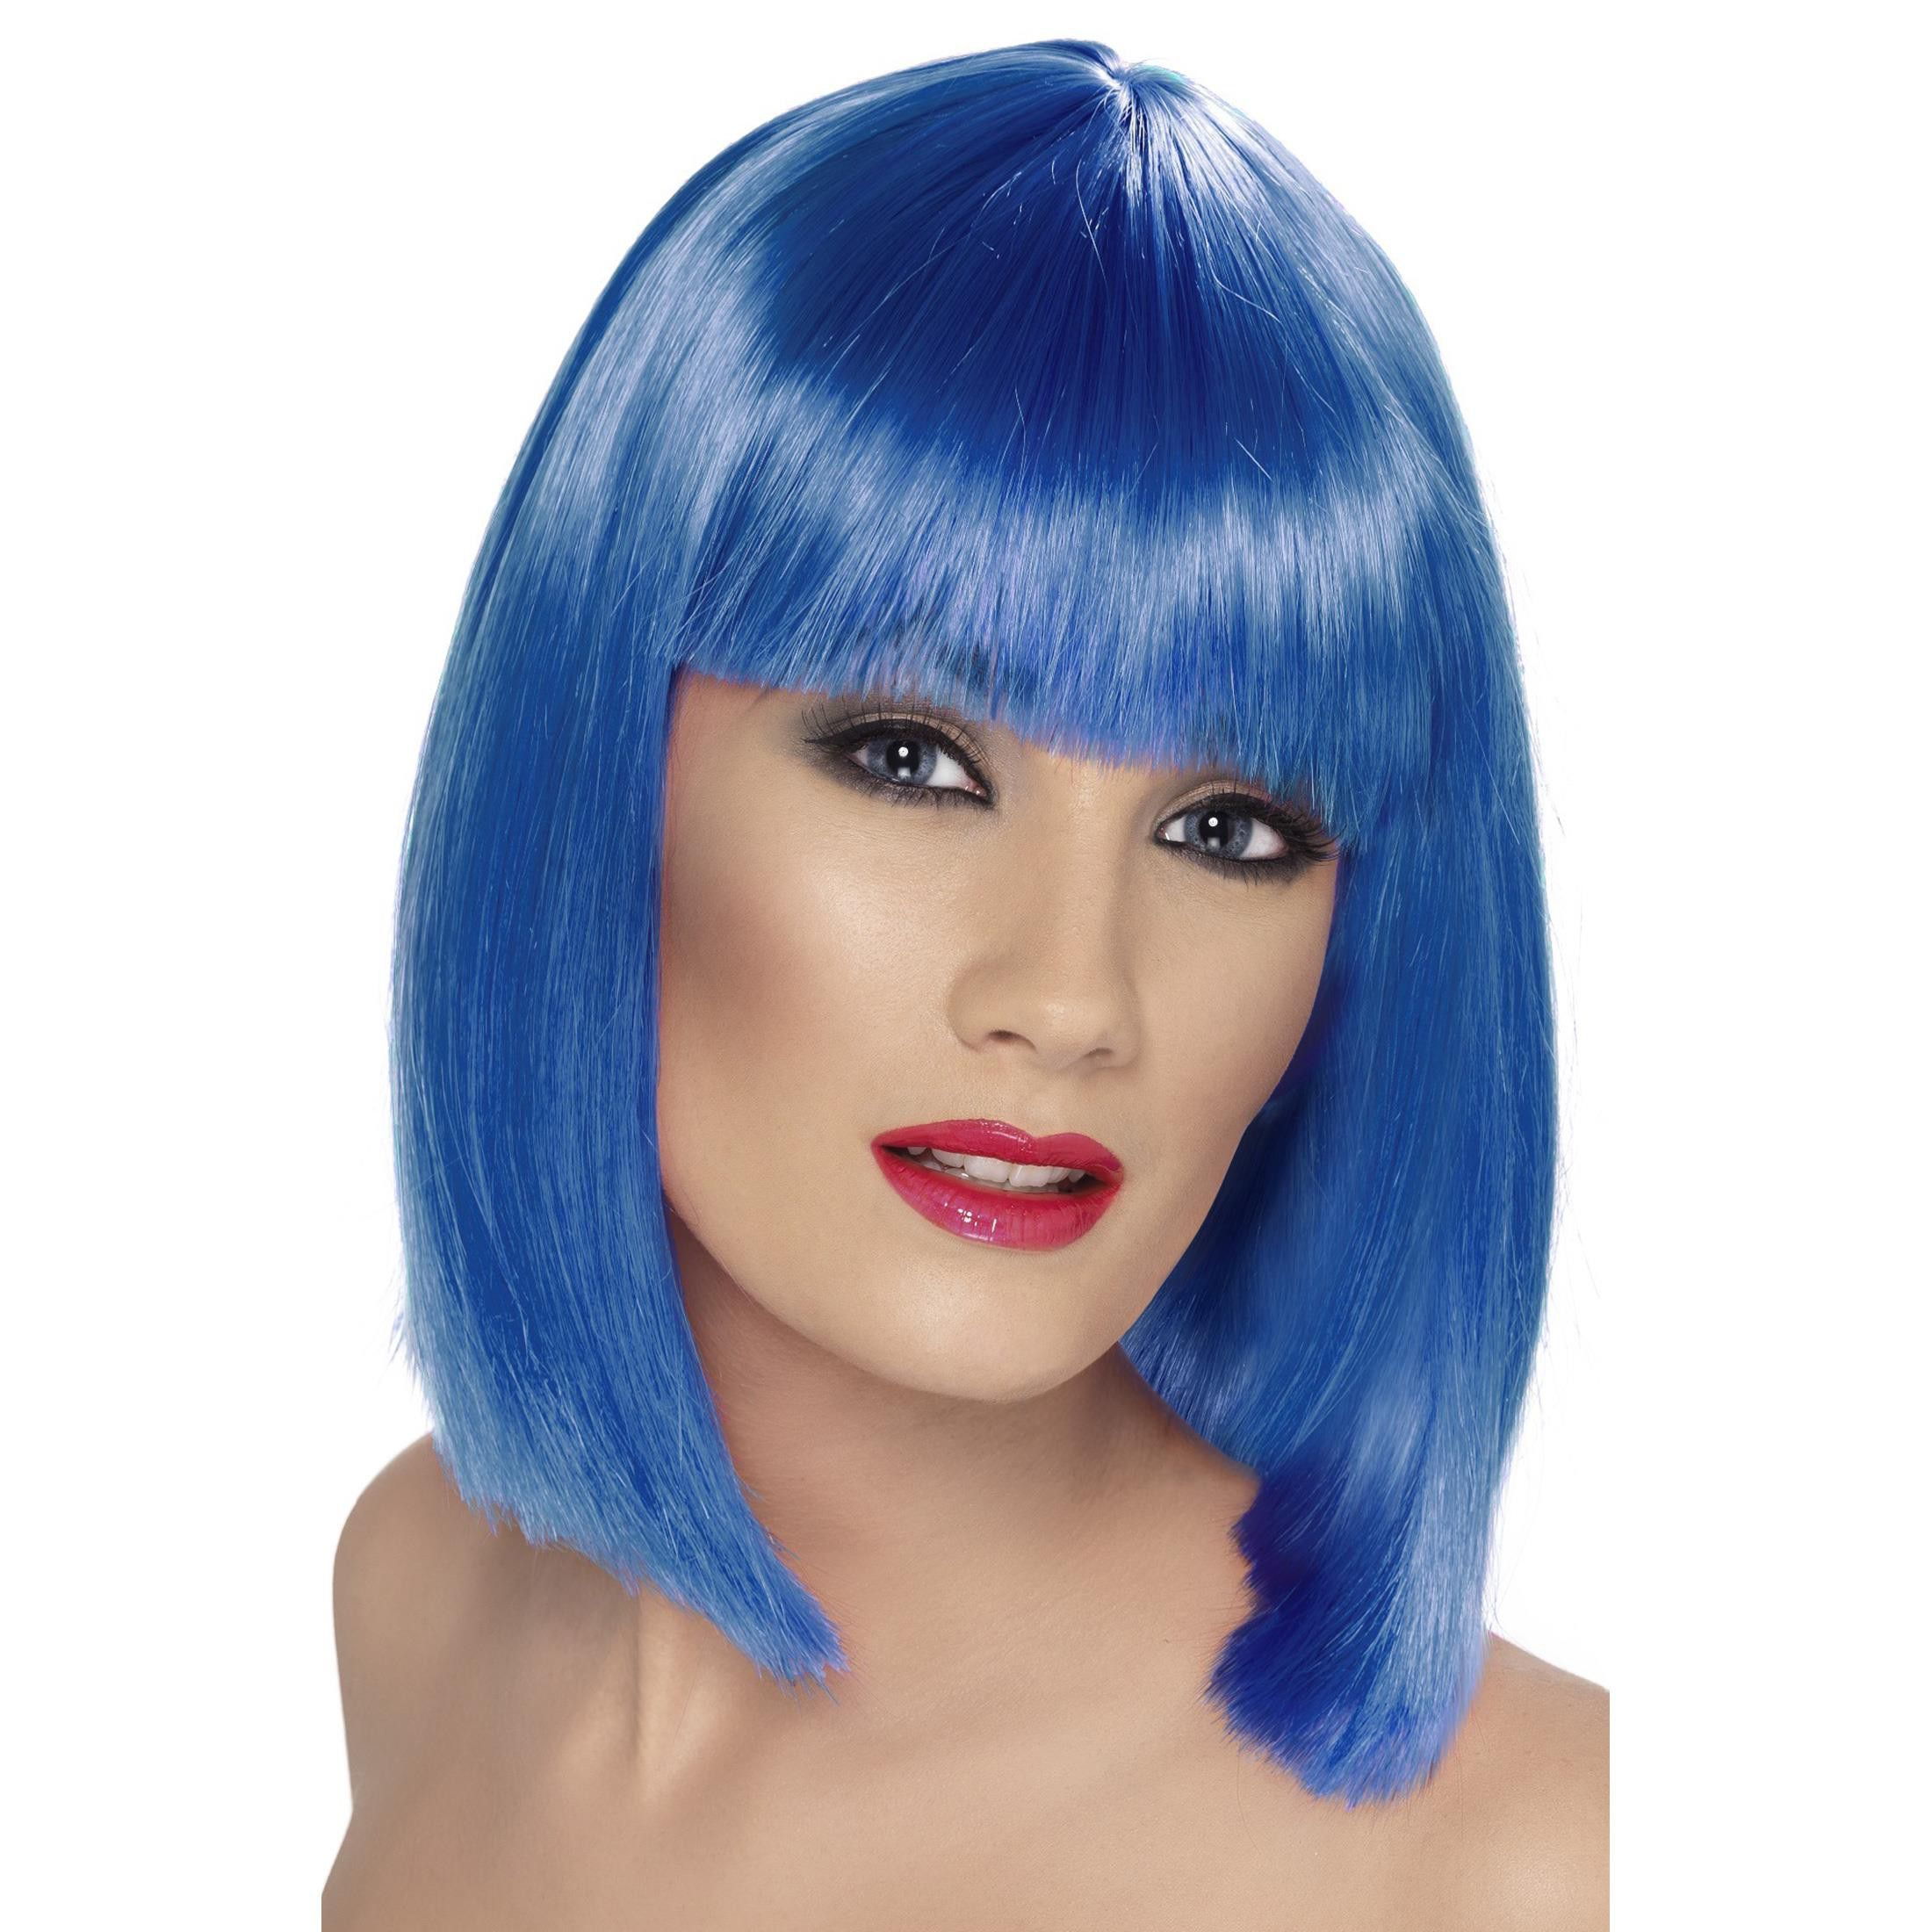 Blue Wigs Lace Frontal Wigs Cheap Human Wigs Light Blue Hair Color Sky Synthetic Wig Sky 010 Best Hair Color For Pale Skin Blue Eyes And Freckles